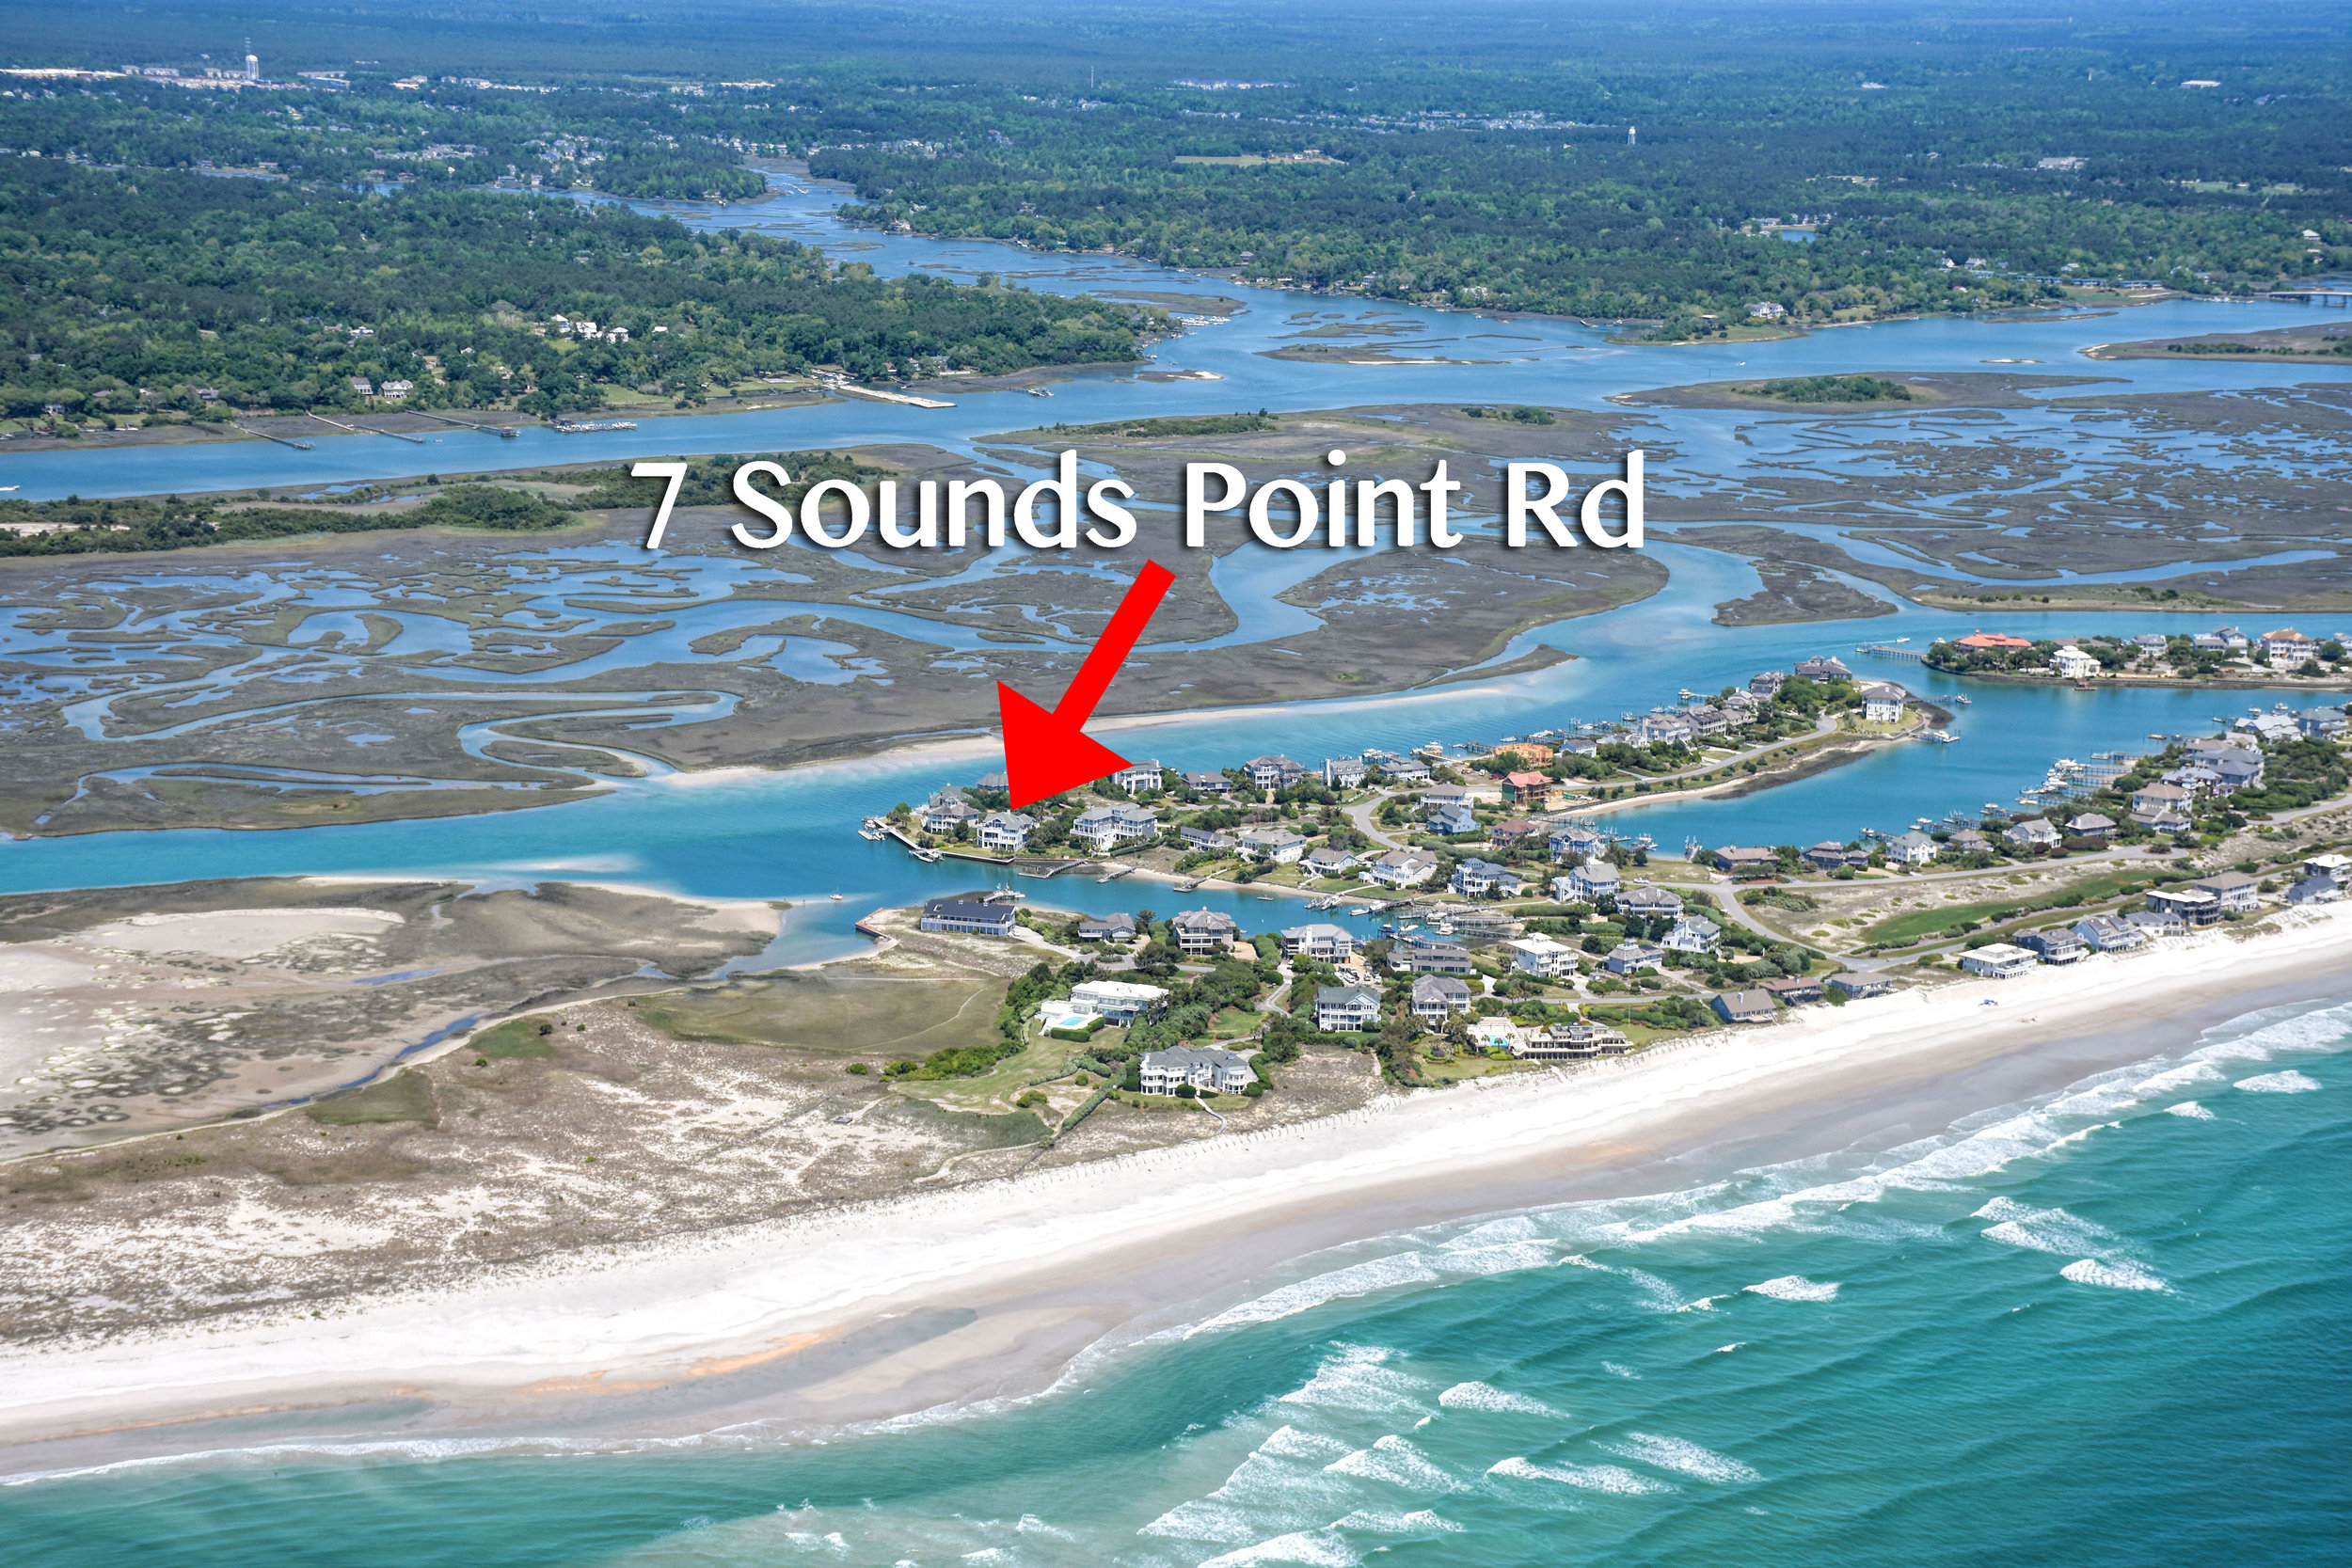 7_sounds_point_rd_1_wilmington-print-002-40-7_sounds_point-4200x2800-300dpi.jpg